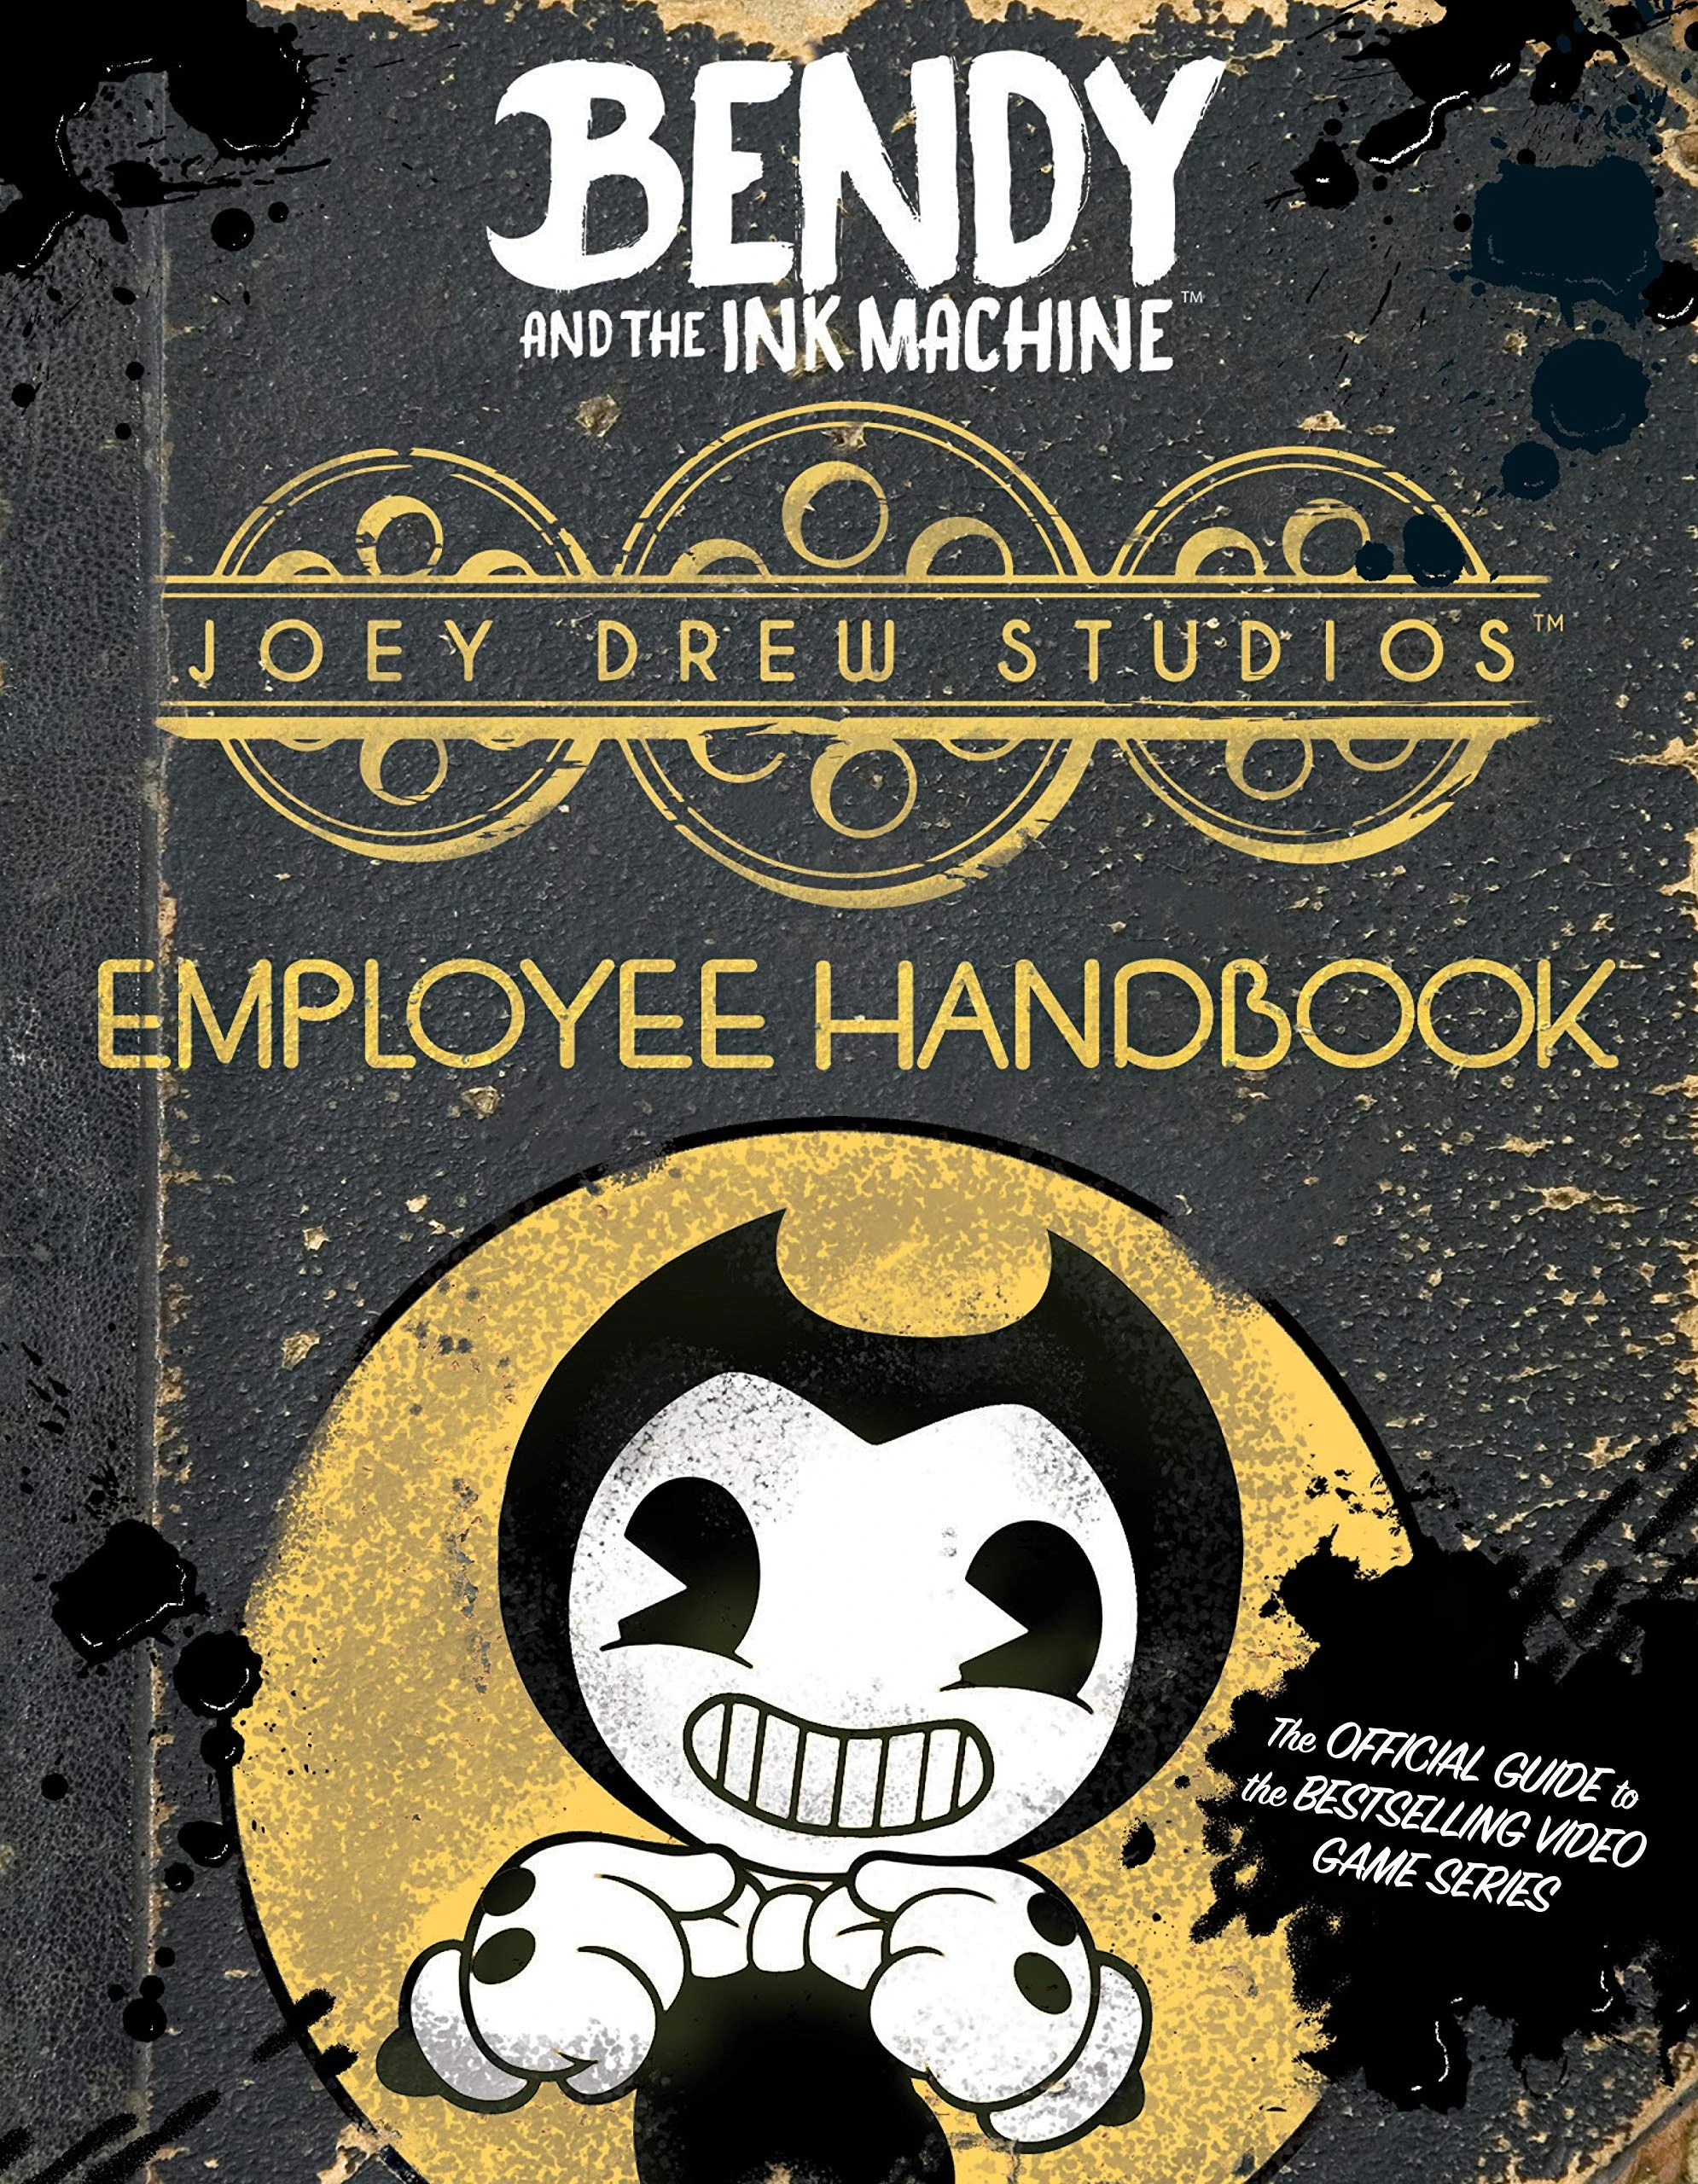 And Ink Machine Bendy Joey